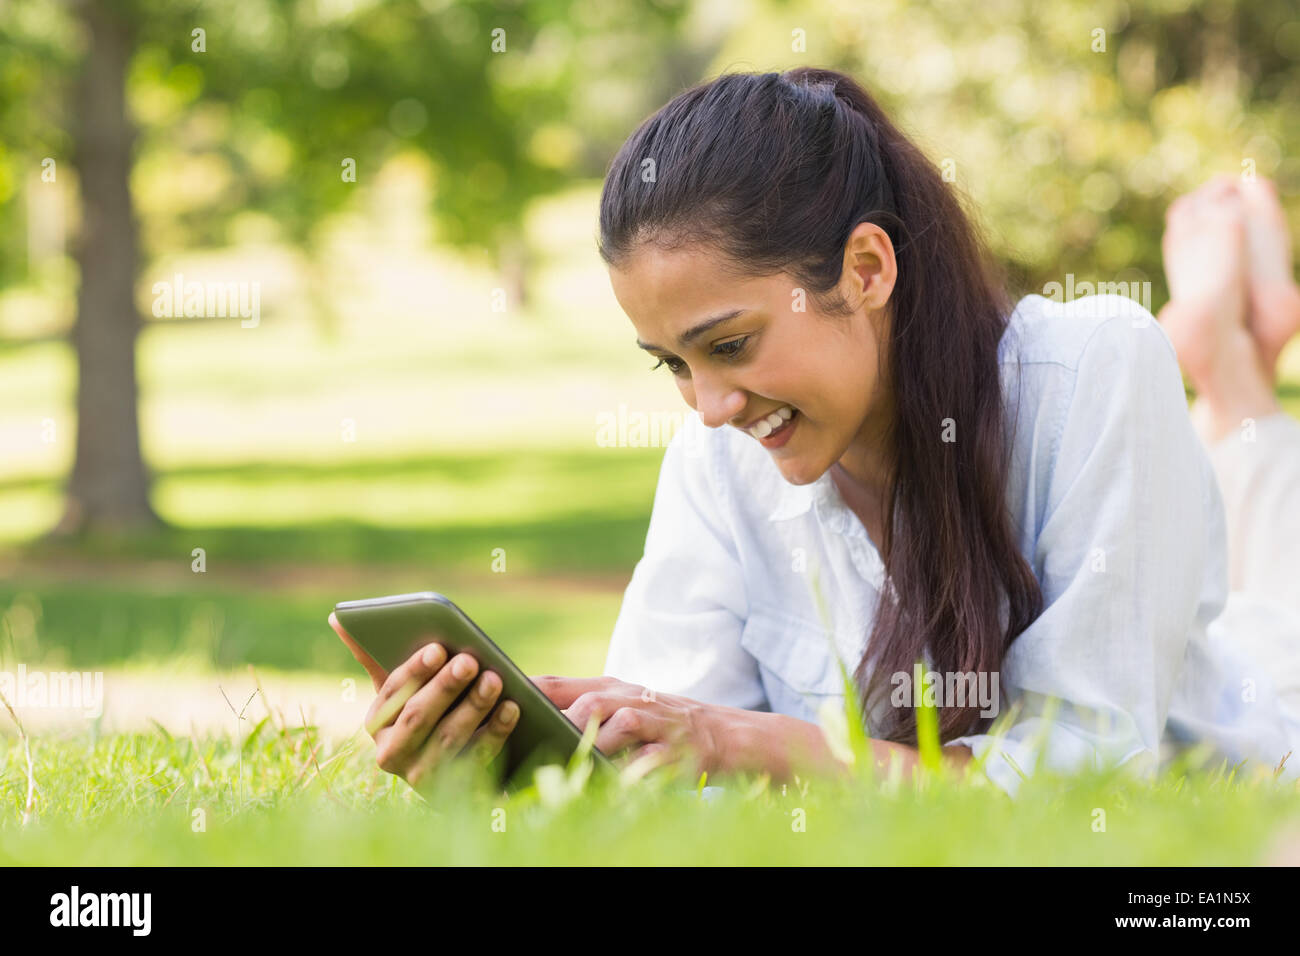 Woman text messaging while relaxing in park - Stock Image